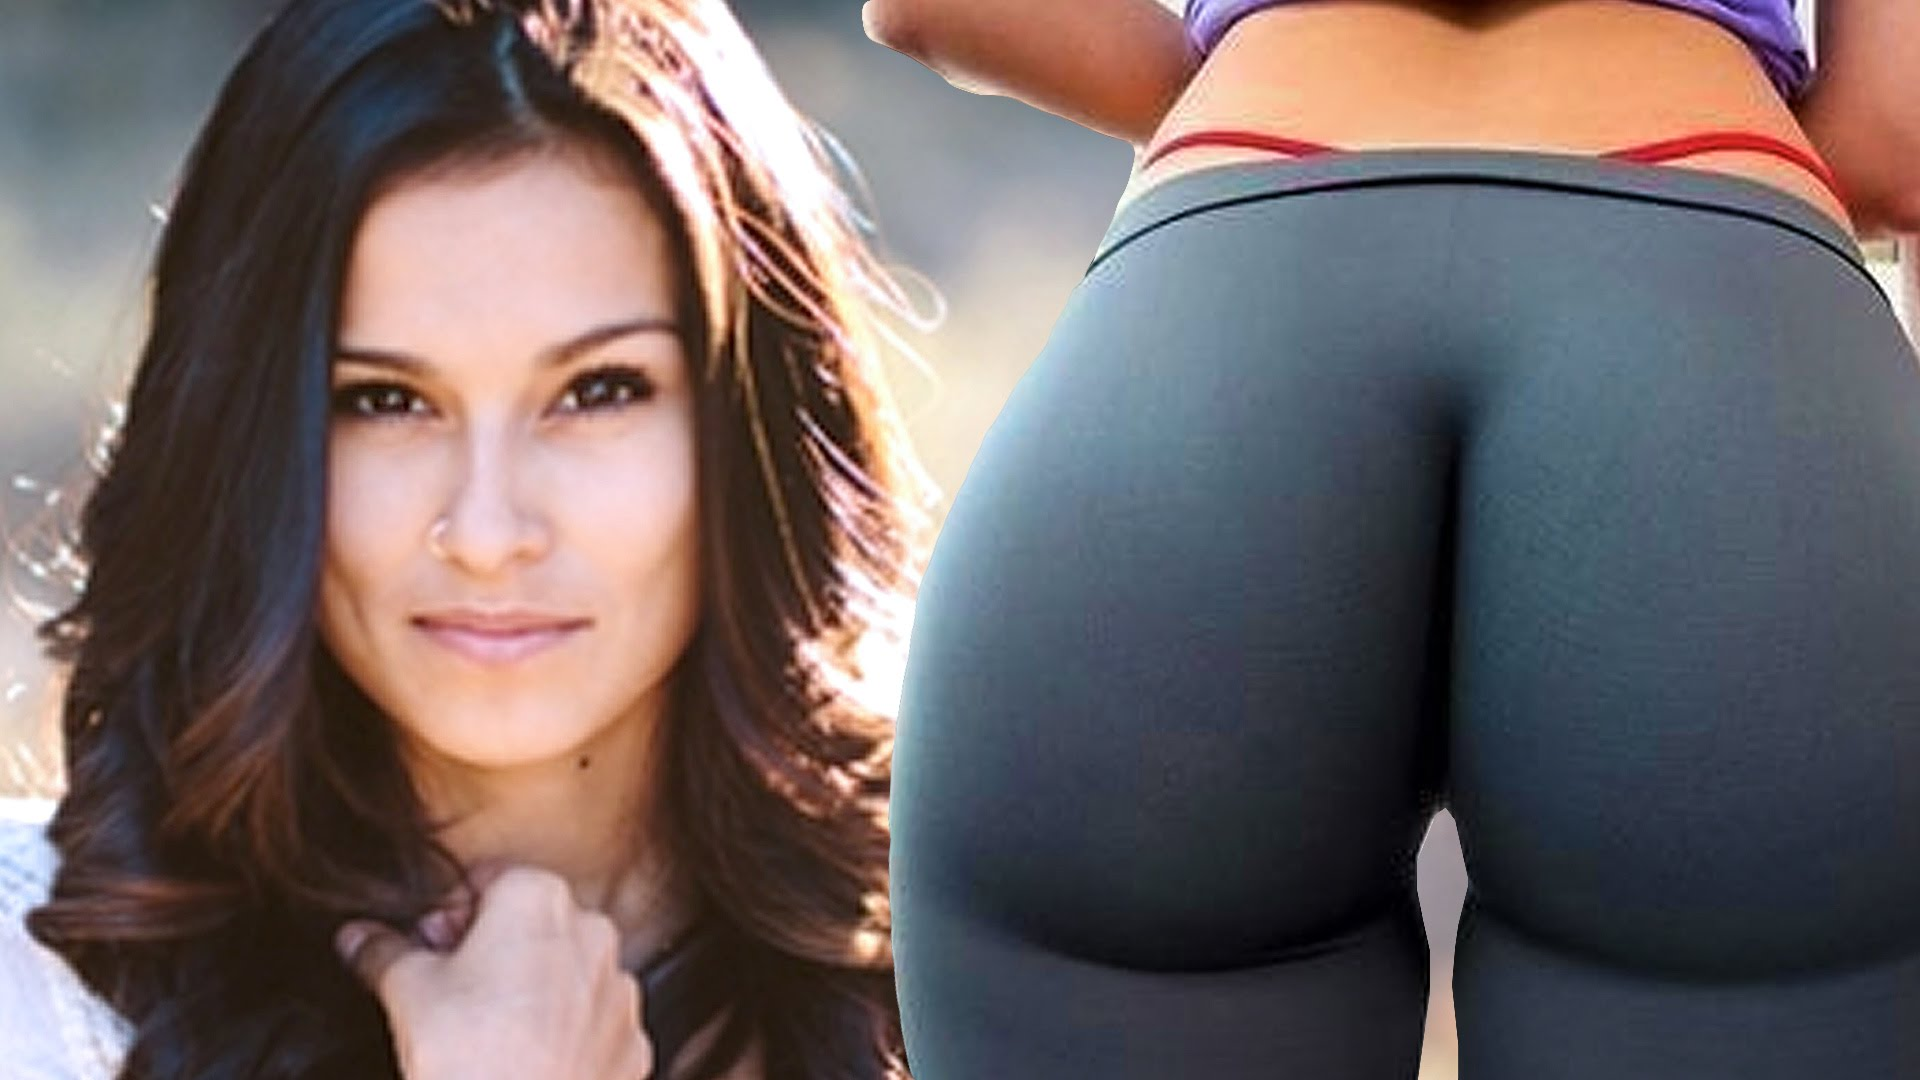 christian blogger stops wearing yoga pants to avoid enticing men